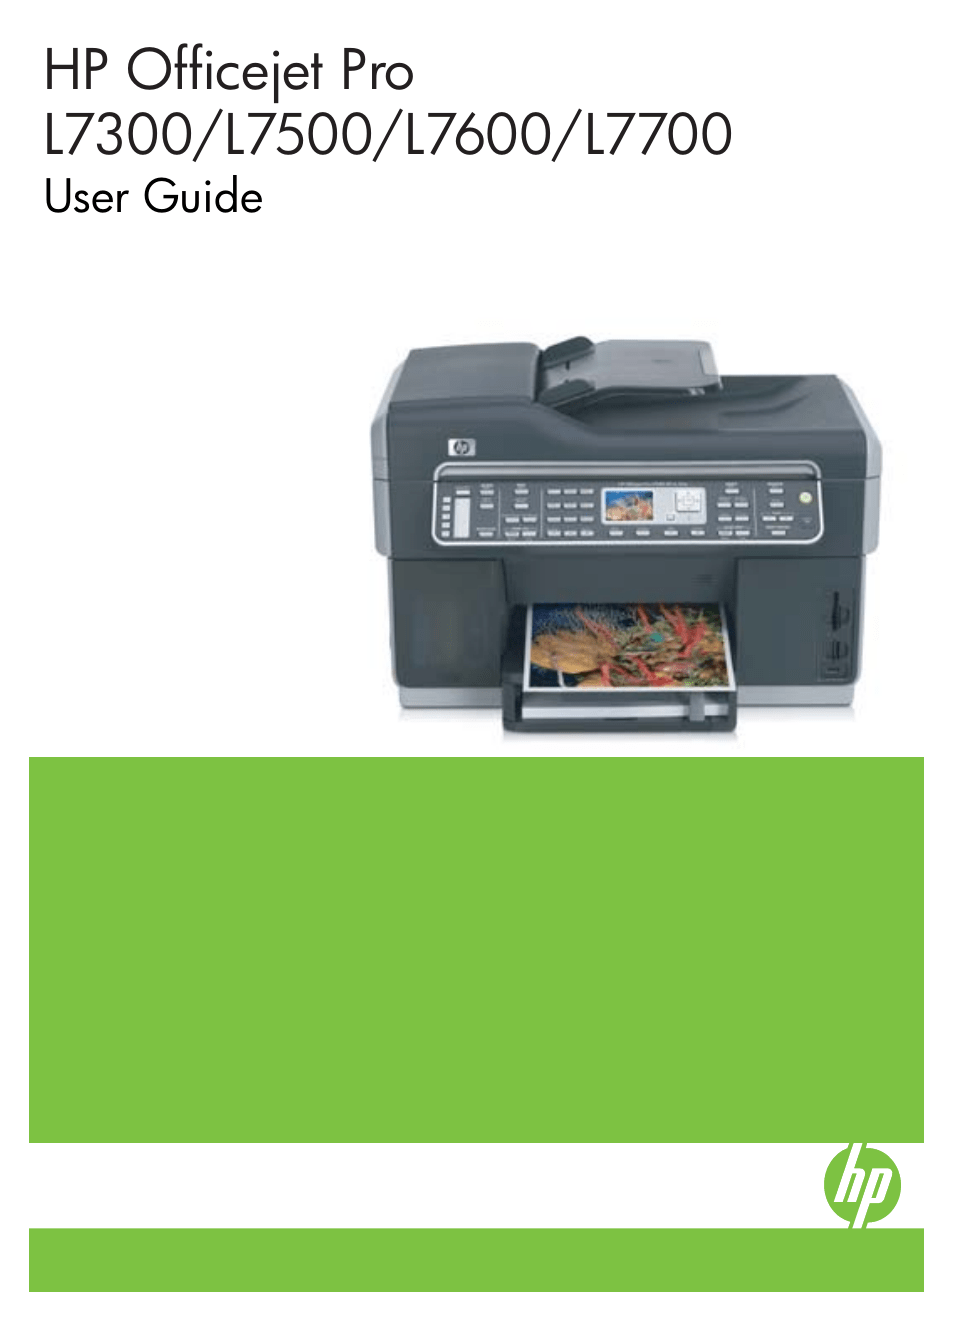 HP Officejet Pro L7380 All-in-One Printer User Manual